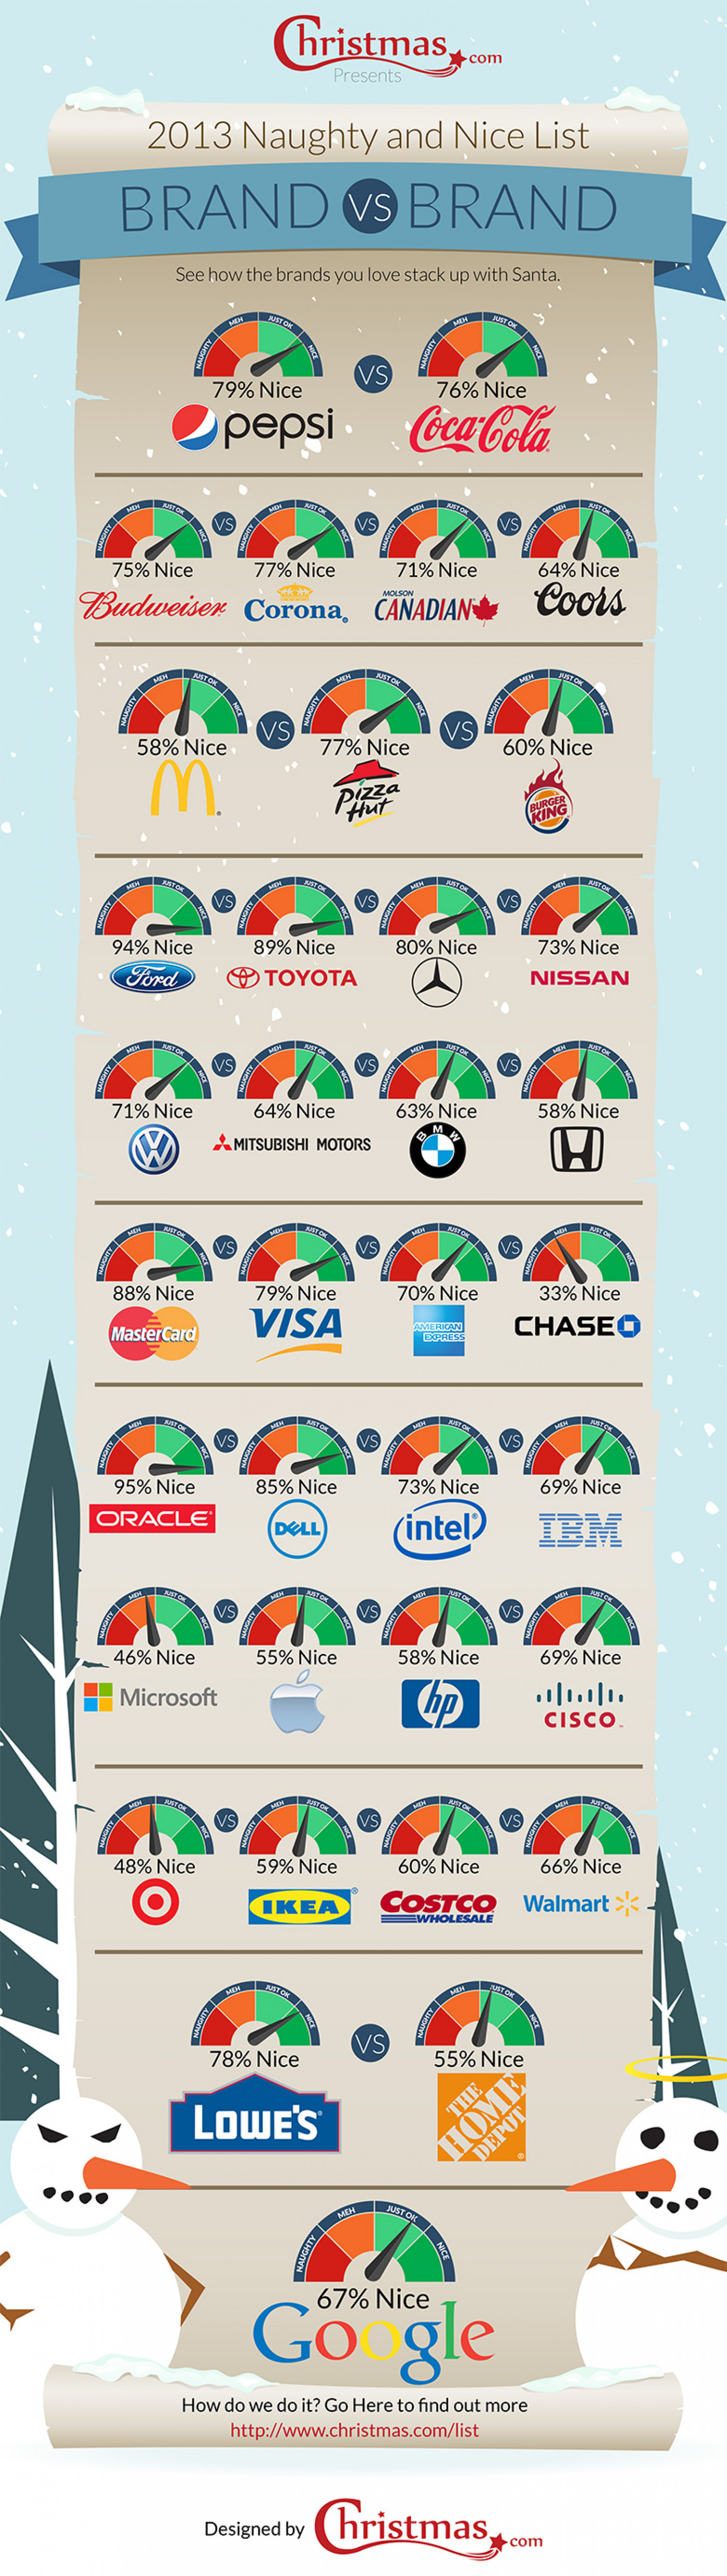 Naughty and Nice List: Brand vs Brand Infographic